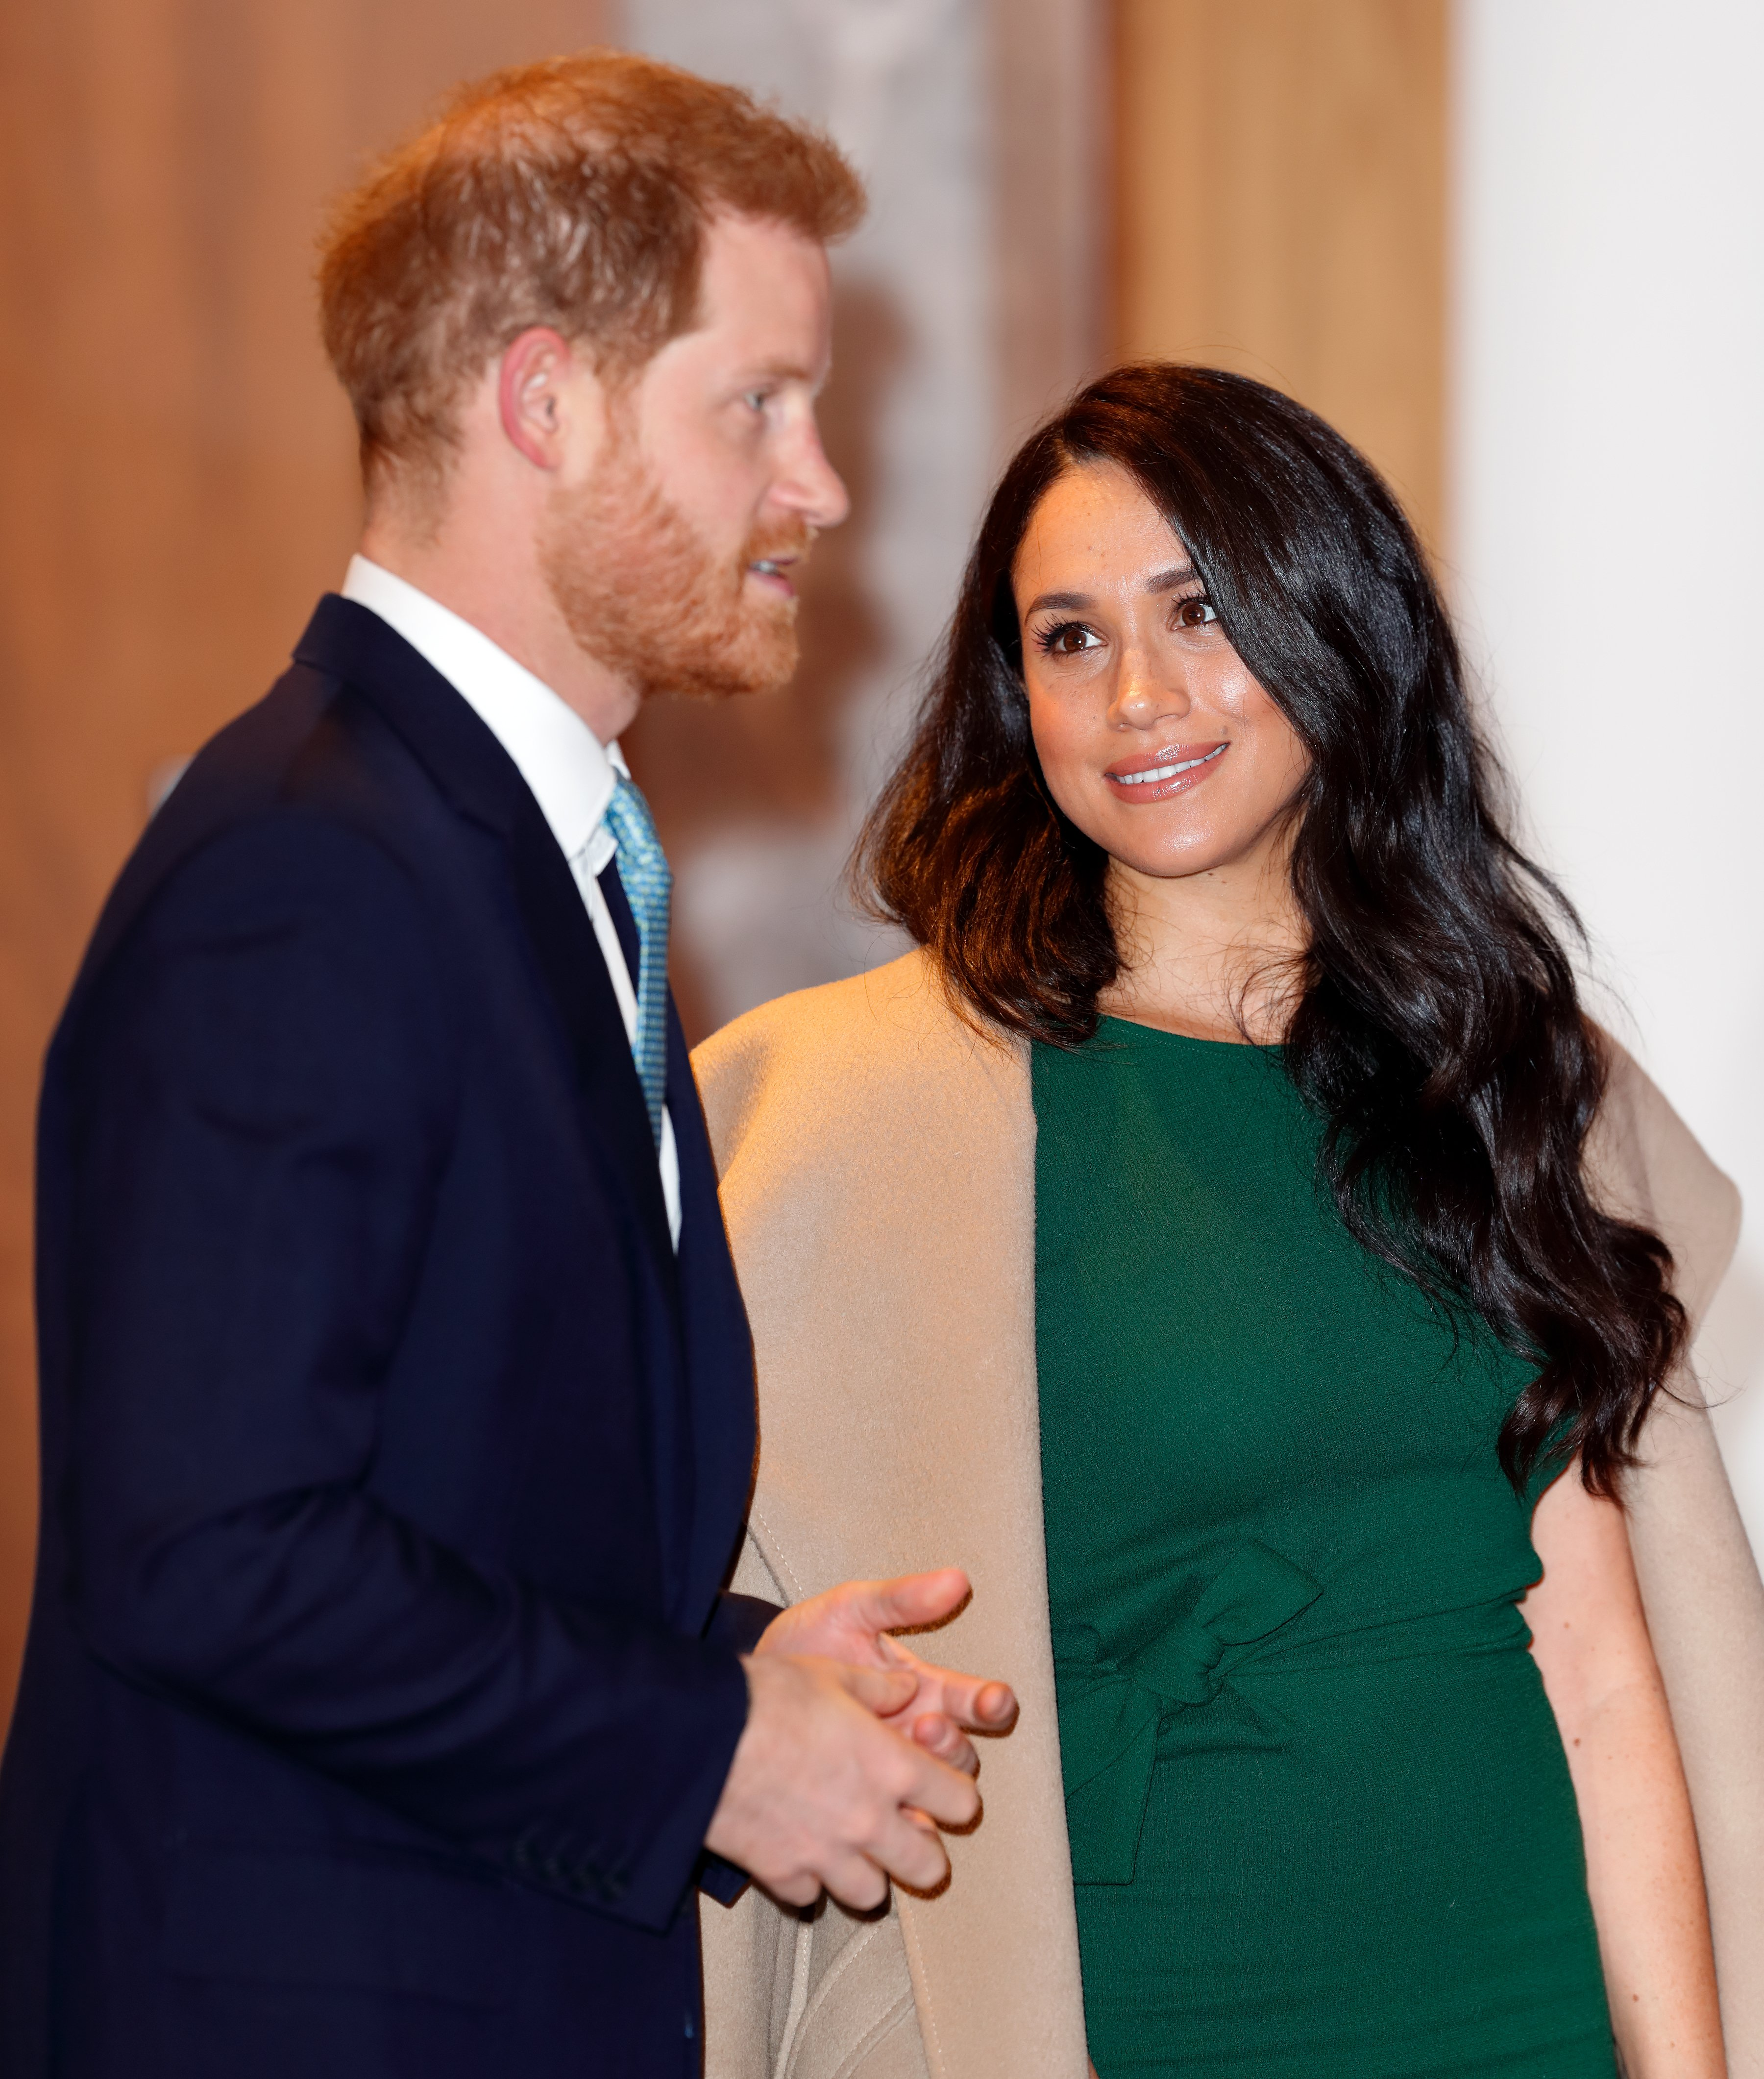 Prince Harry and Meghan Markle attend the WellChild awards at the Royal Lancaster Hotel on October 15, 2019 | Photo: Getty Images